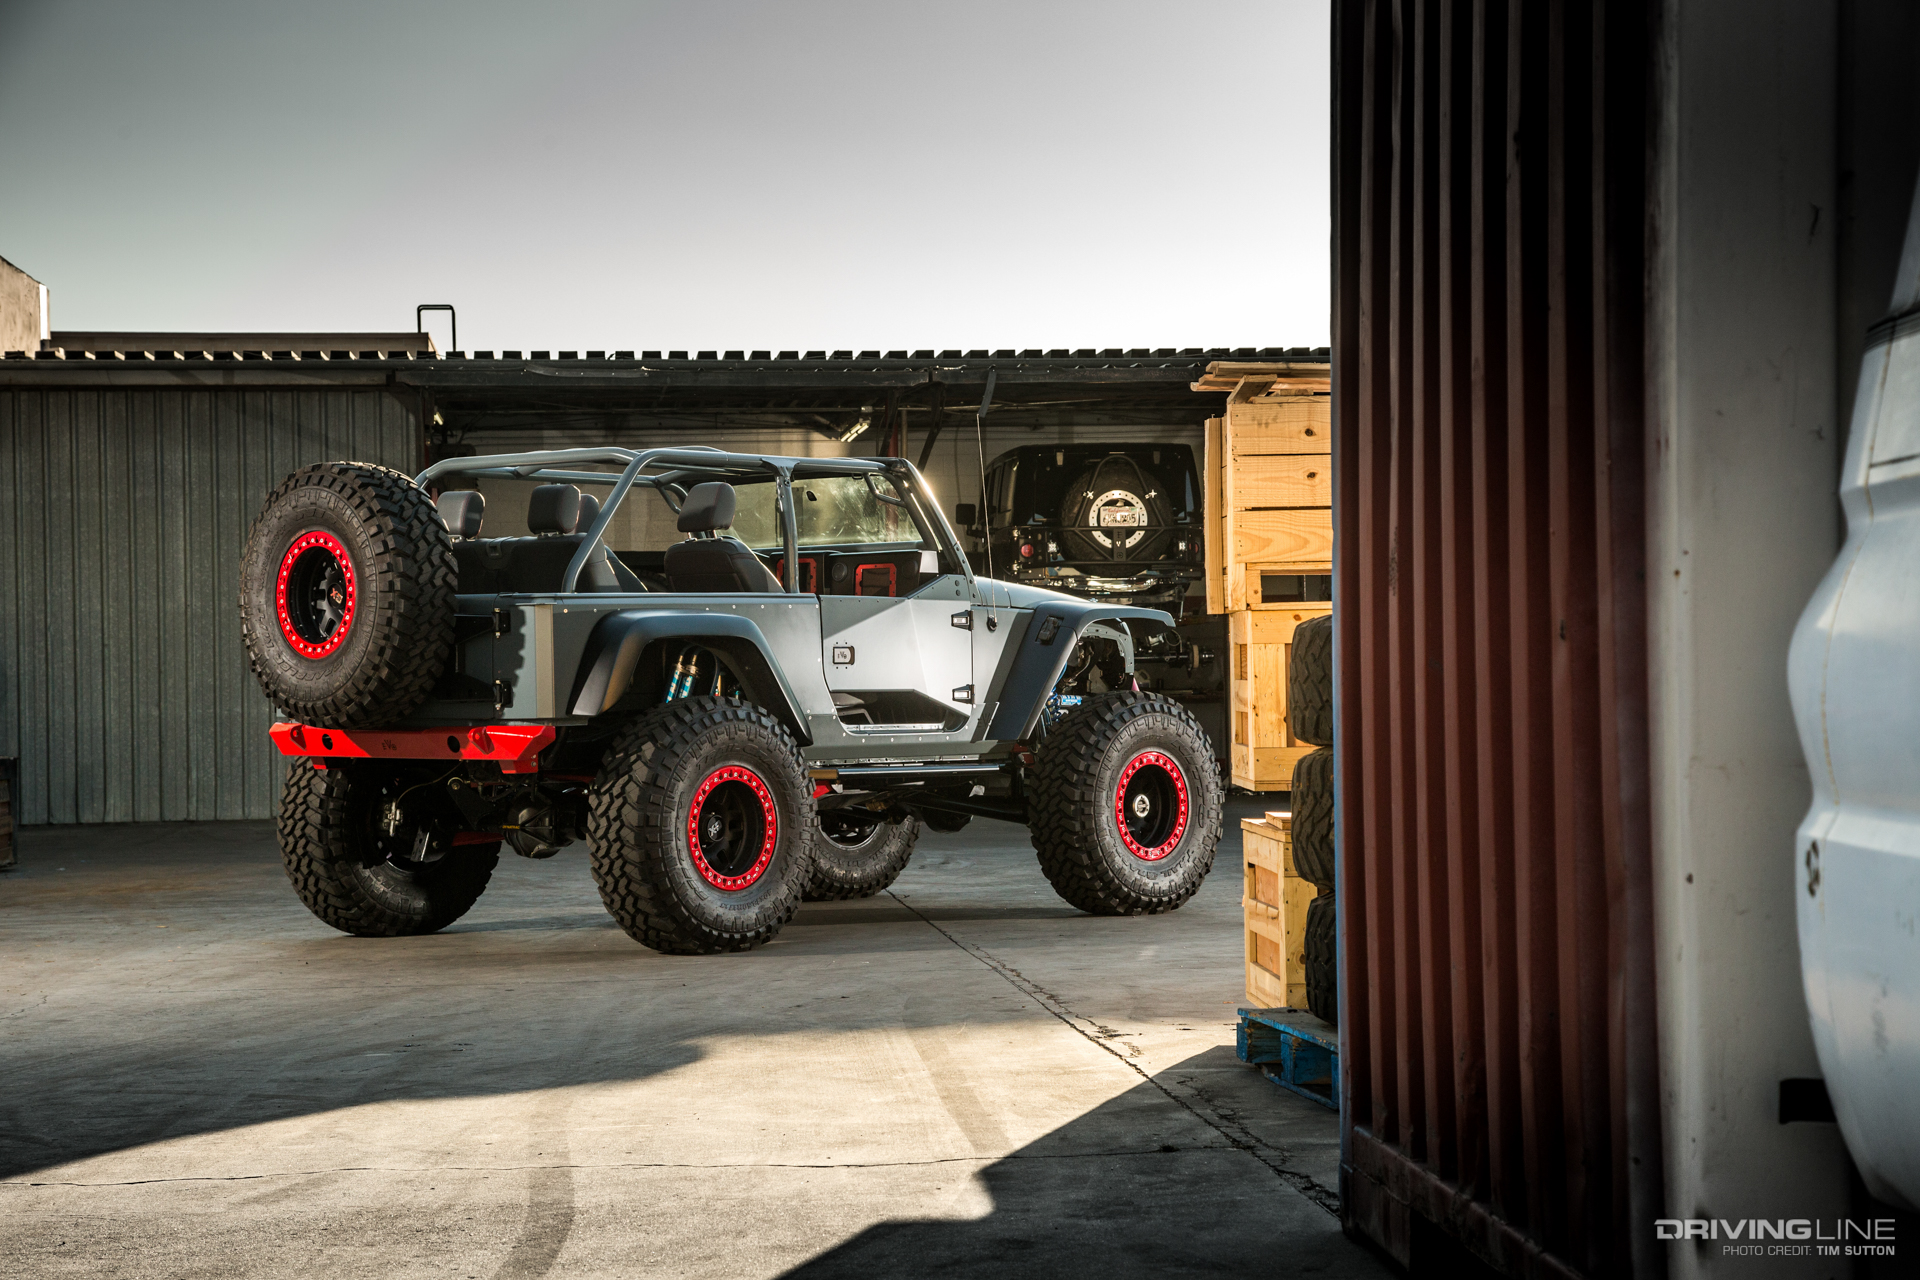 Jeep Information And Evolution Offroaders Com >> This Is The Uae1 A Heavily Modified Jeep Wrangler Built For A